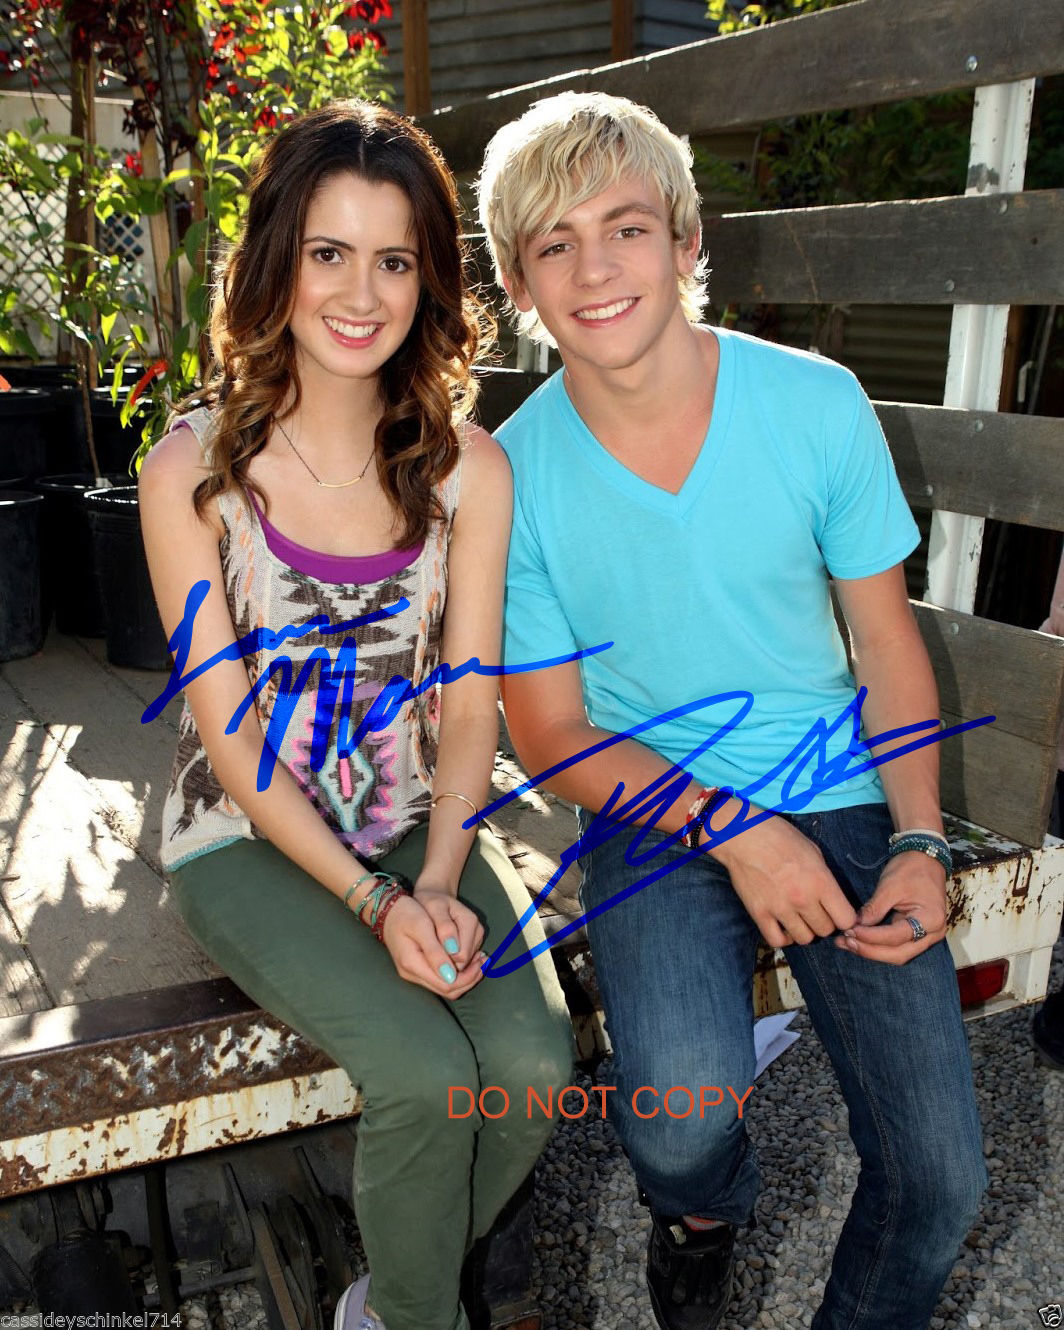 Austin_Ally_Disney_Laura_Marano_Ross_Lynch